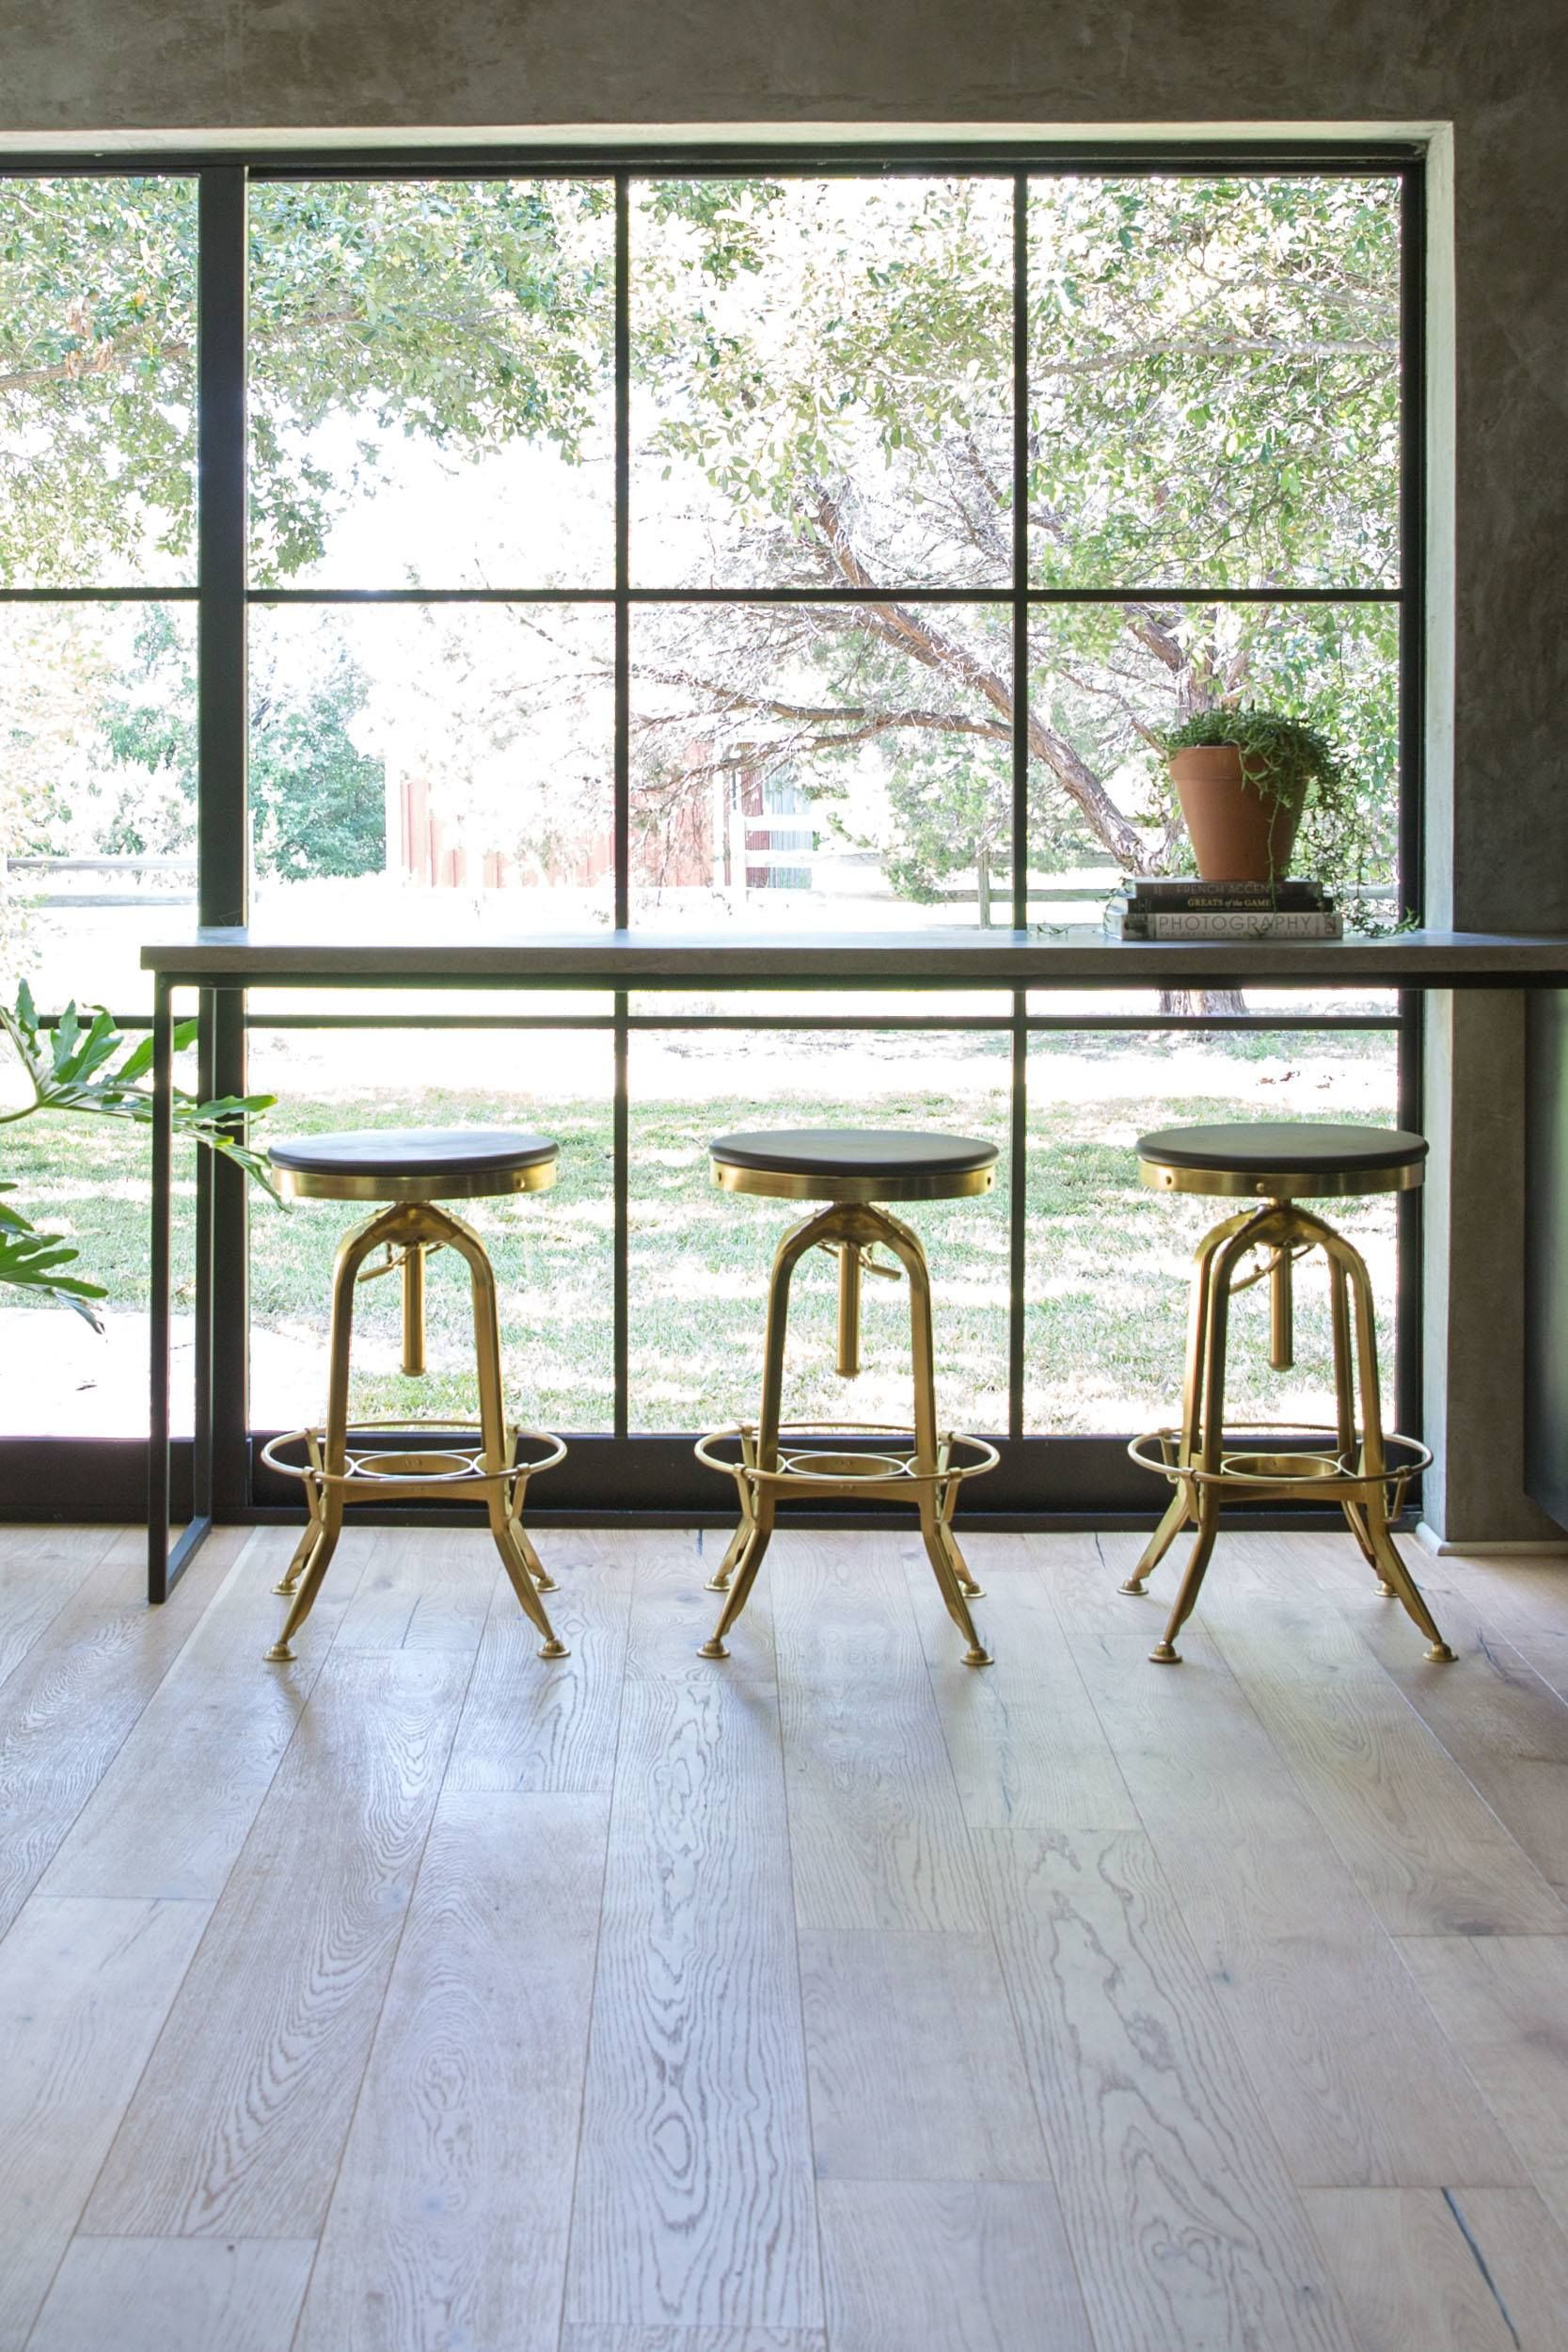 Episode 06 The Pick A Door House Magnolia Kitchen Window Bar Bar Seating Home Decor